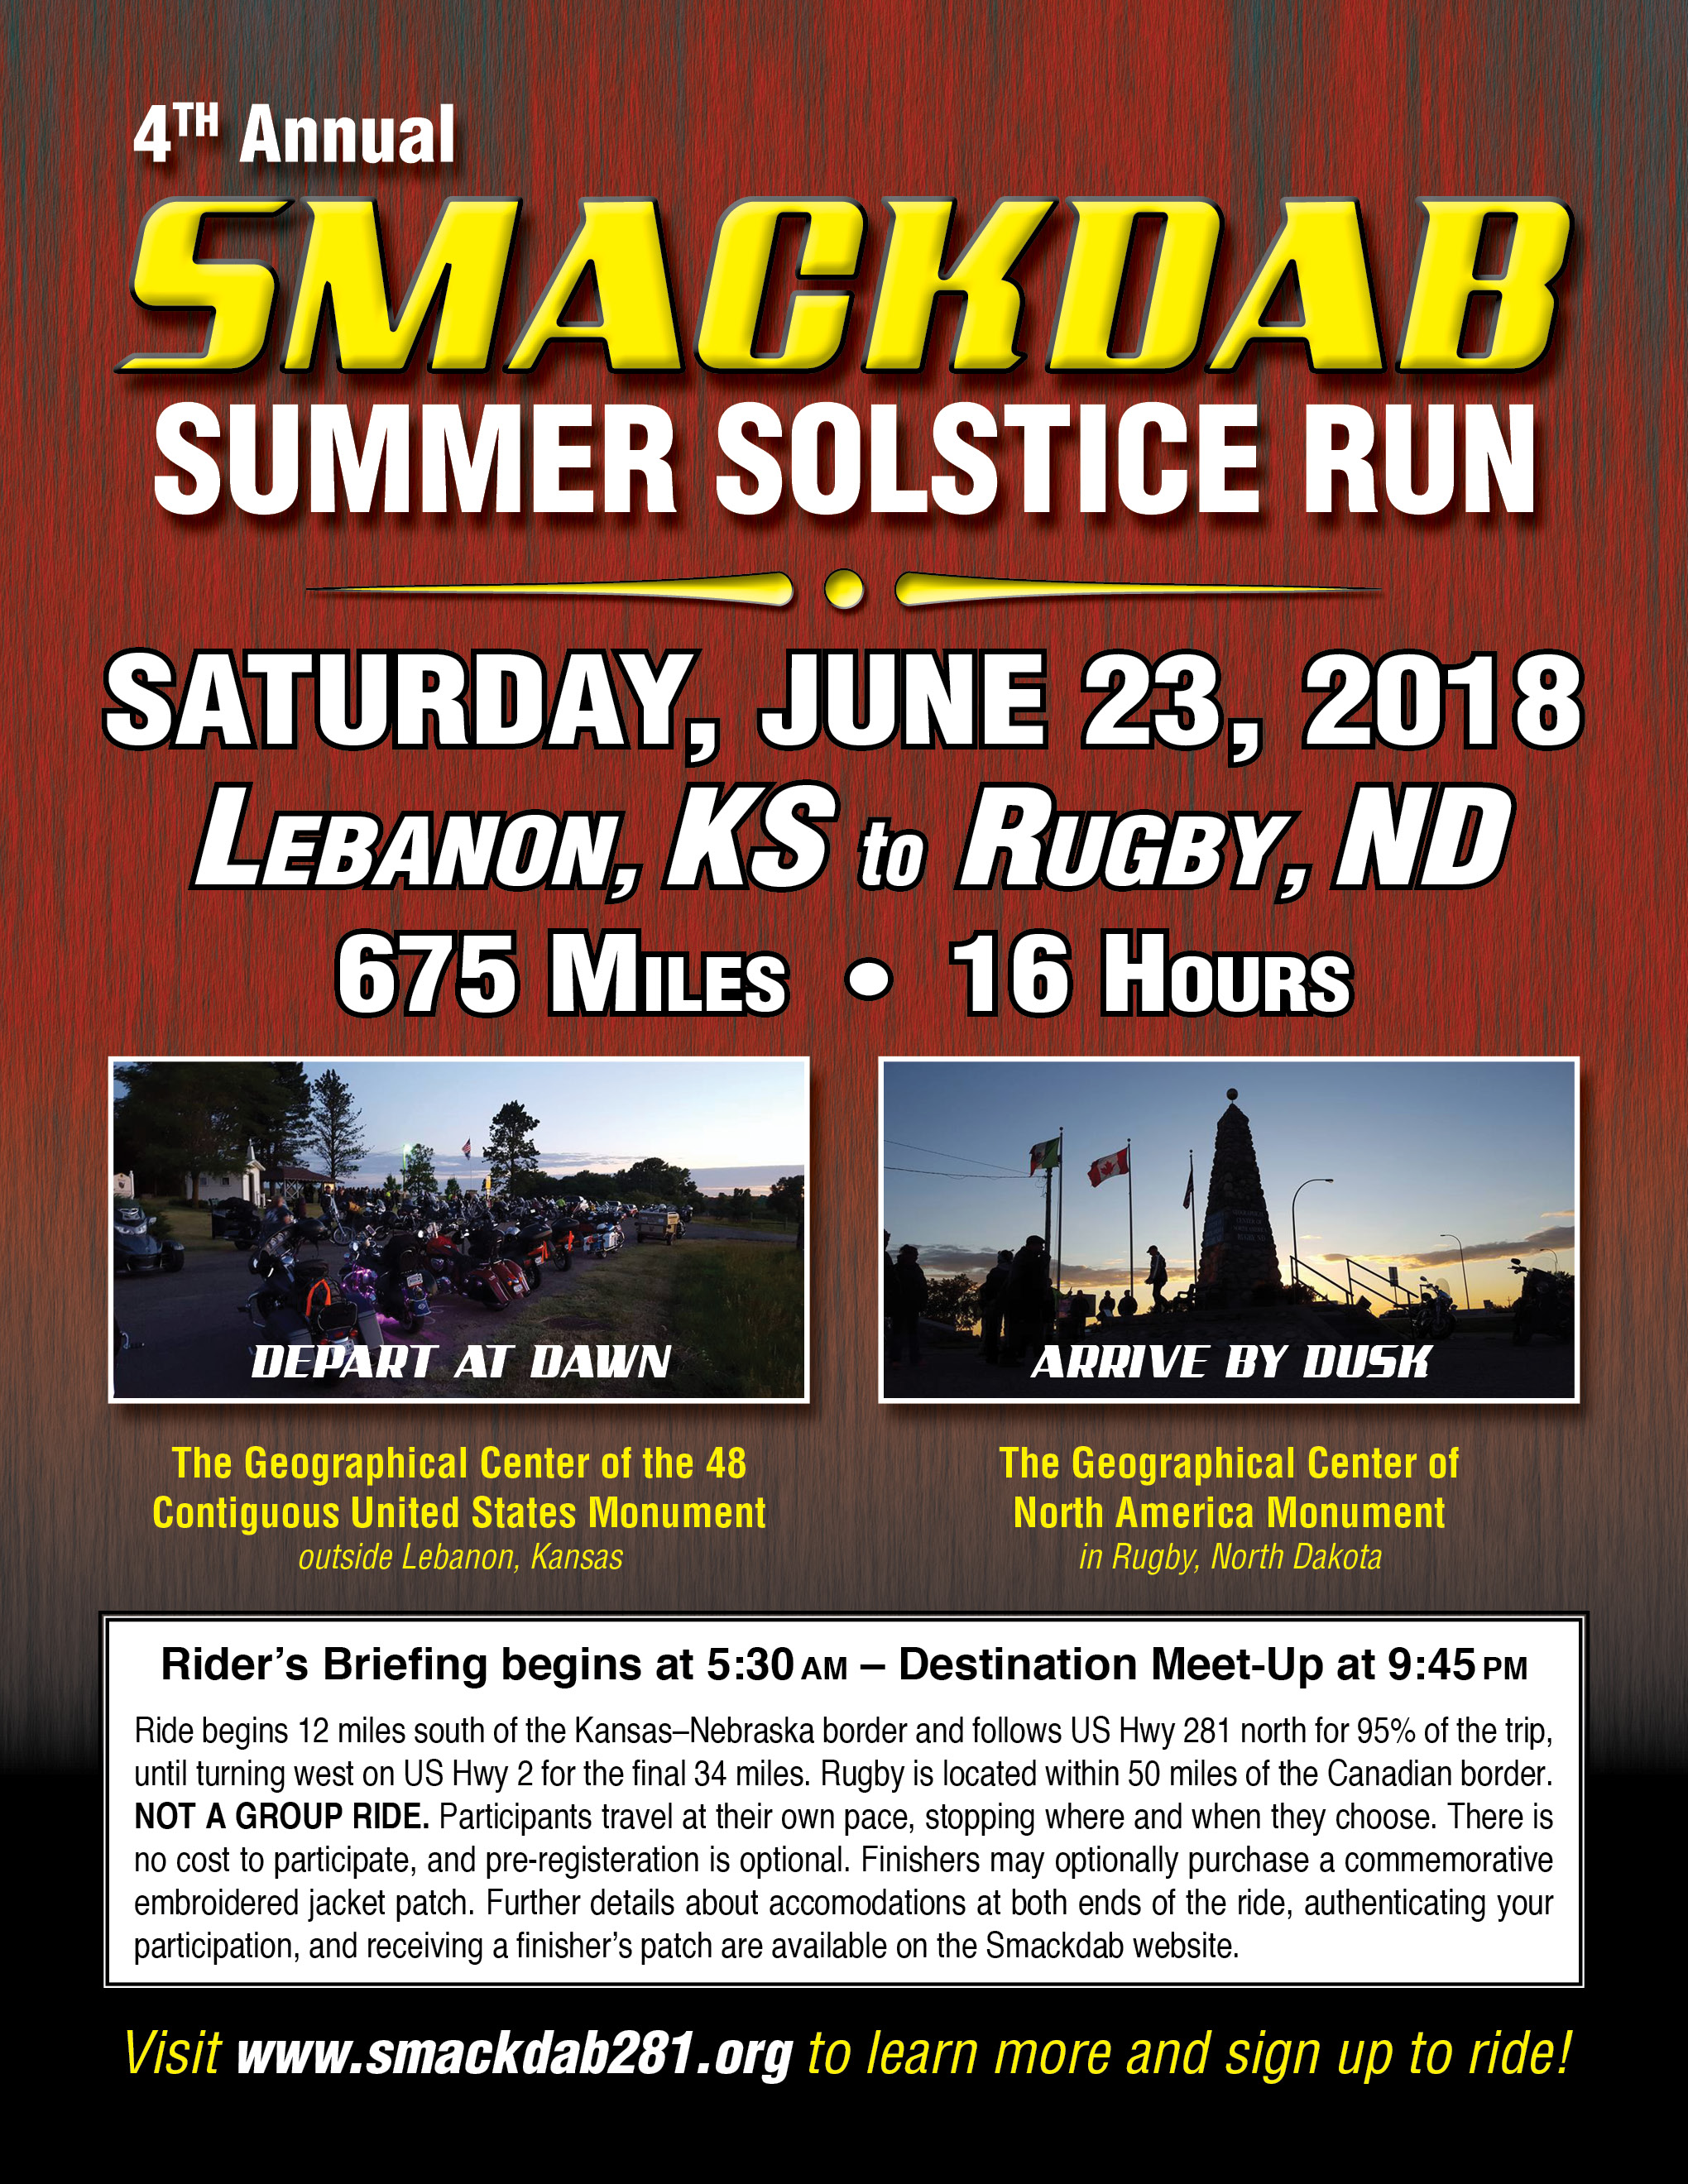 Promotional Flyer Available for Download – THE SMACKDAB RUN